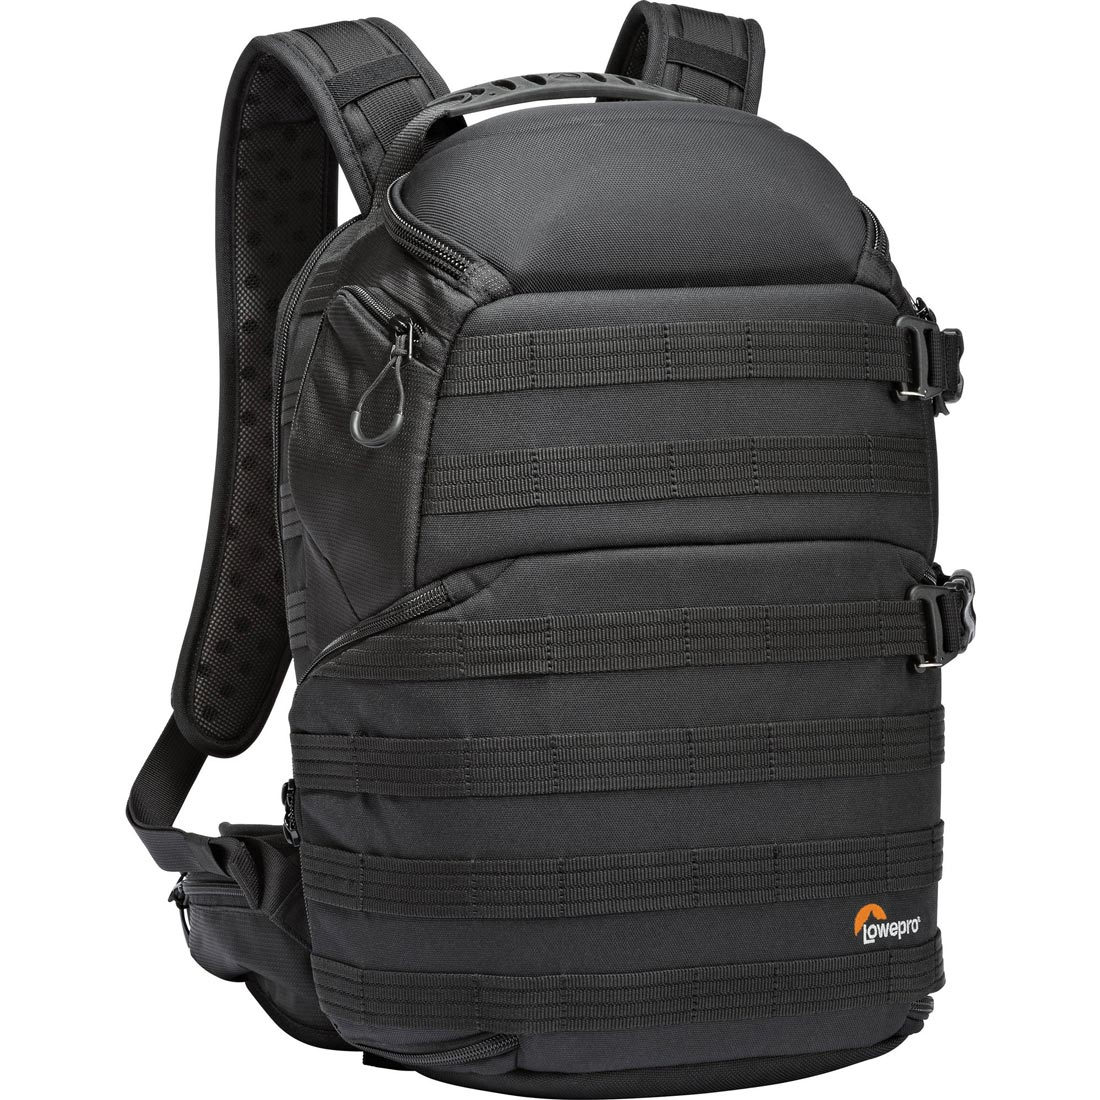 Le sac à dos photo Lowepro ProTactic 350 AW.